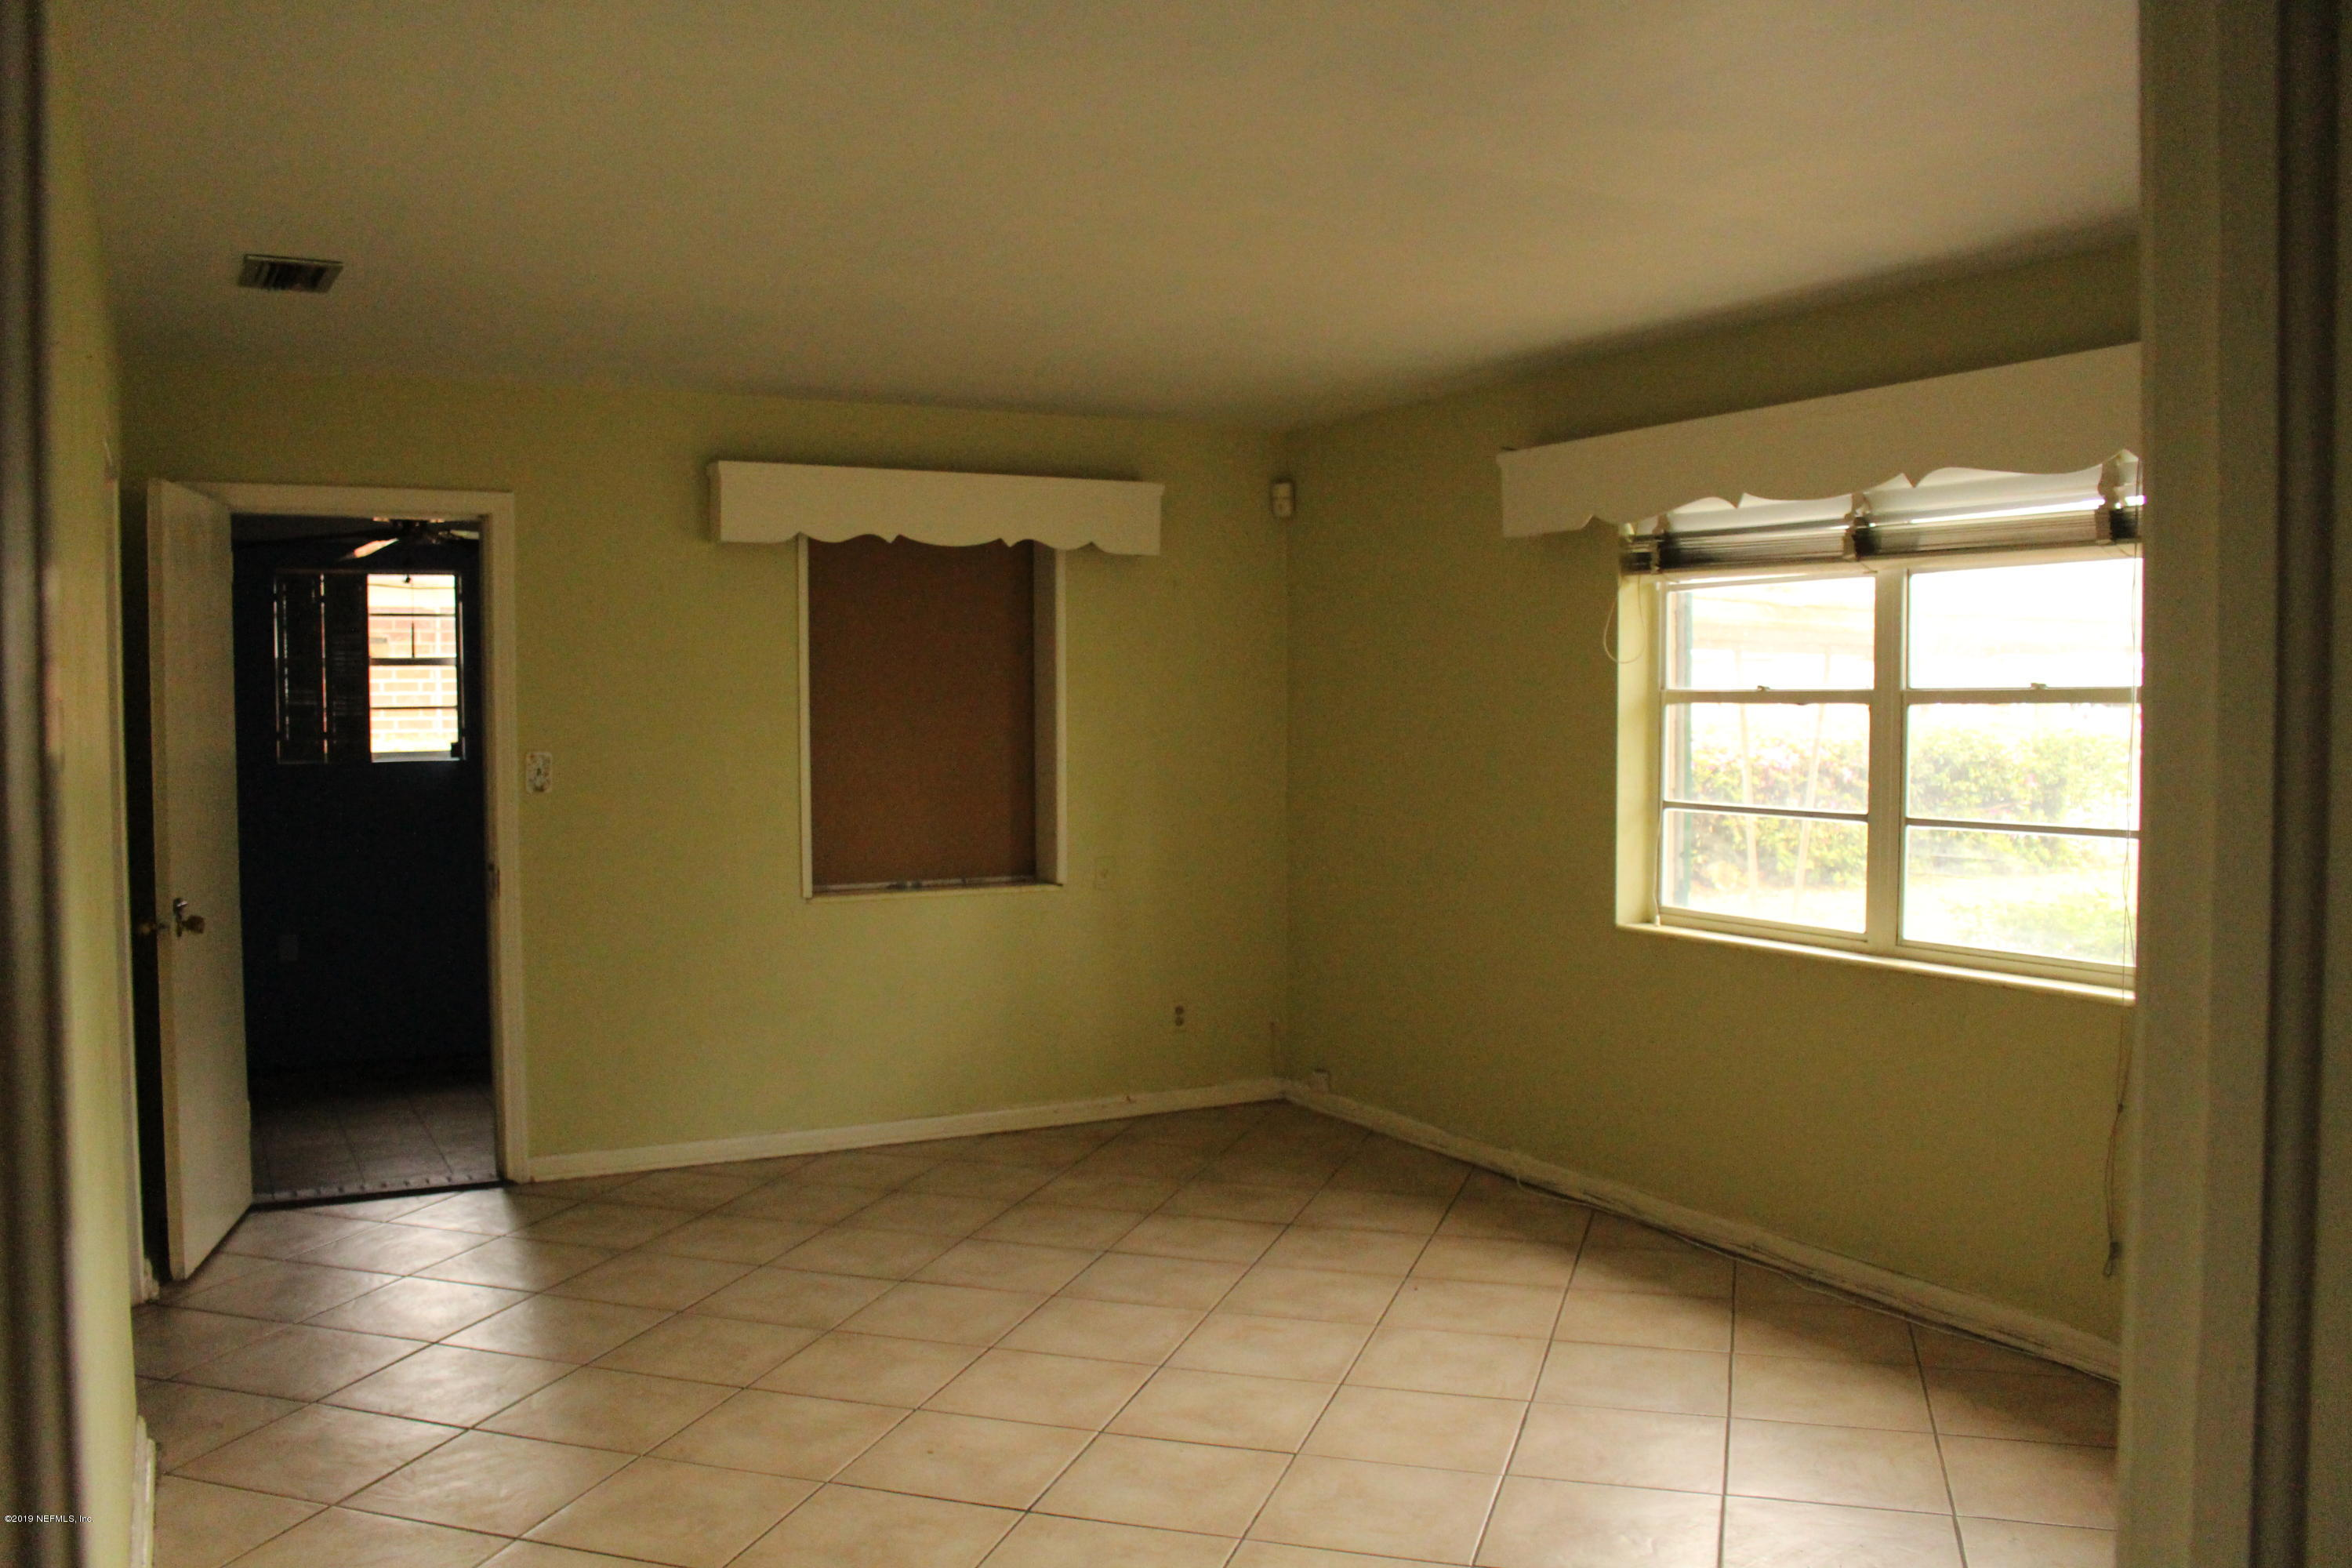 2228 RED OAK, JACKSONVILLE, FLORIDA 32211, 3 Bedrooms Bedrooms, ,1 BathroomBathrooms,Residential - single family,For sale,RED OAK,984089